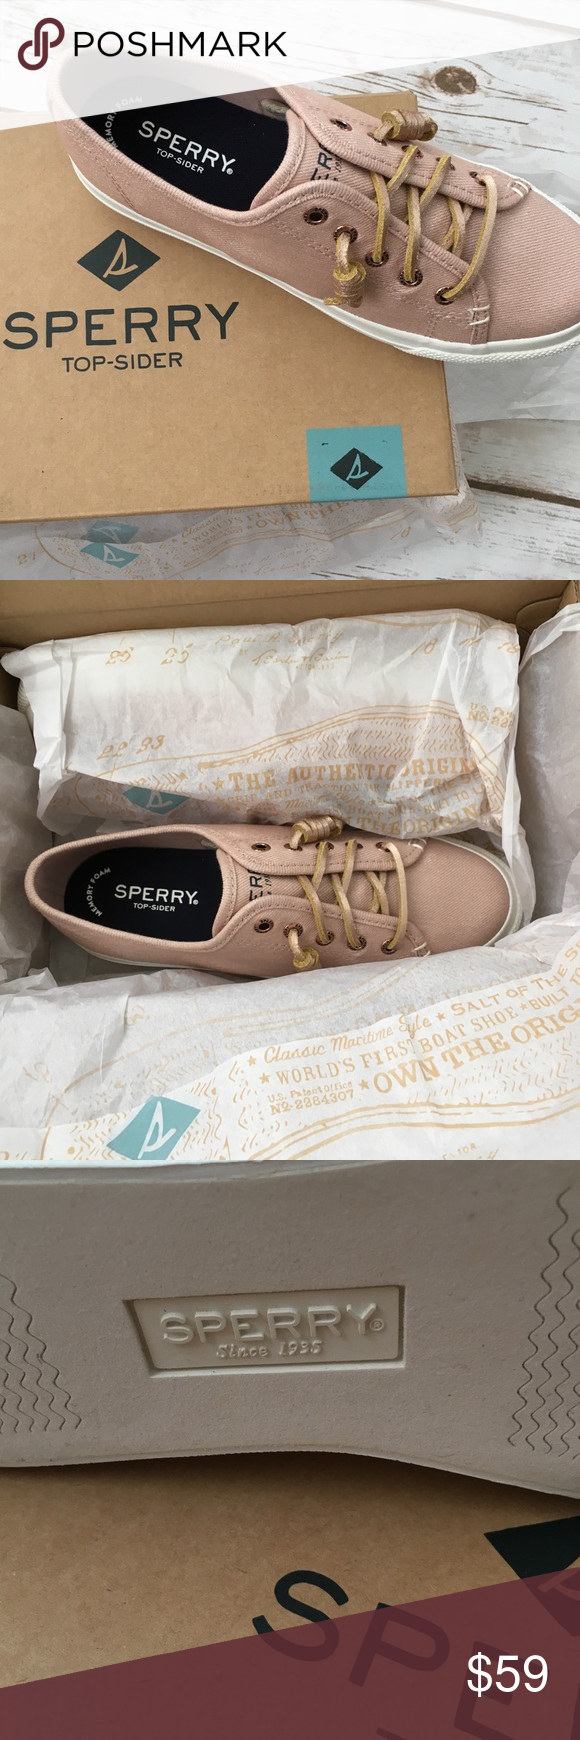 a14e4f8bfc Sperry • Sky Sail Platform Sneaker new - In Box! • Sperry • Sky Sail  Platform Sneaker Metallic Rose Sperry Shoes Sneakers